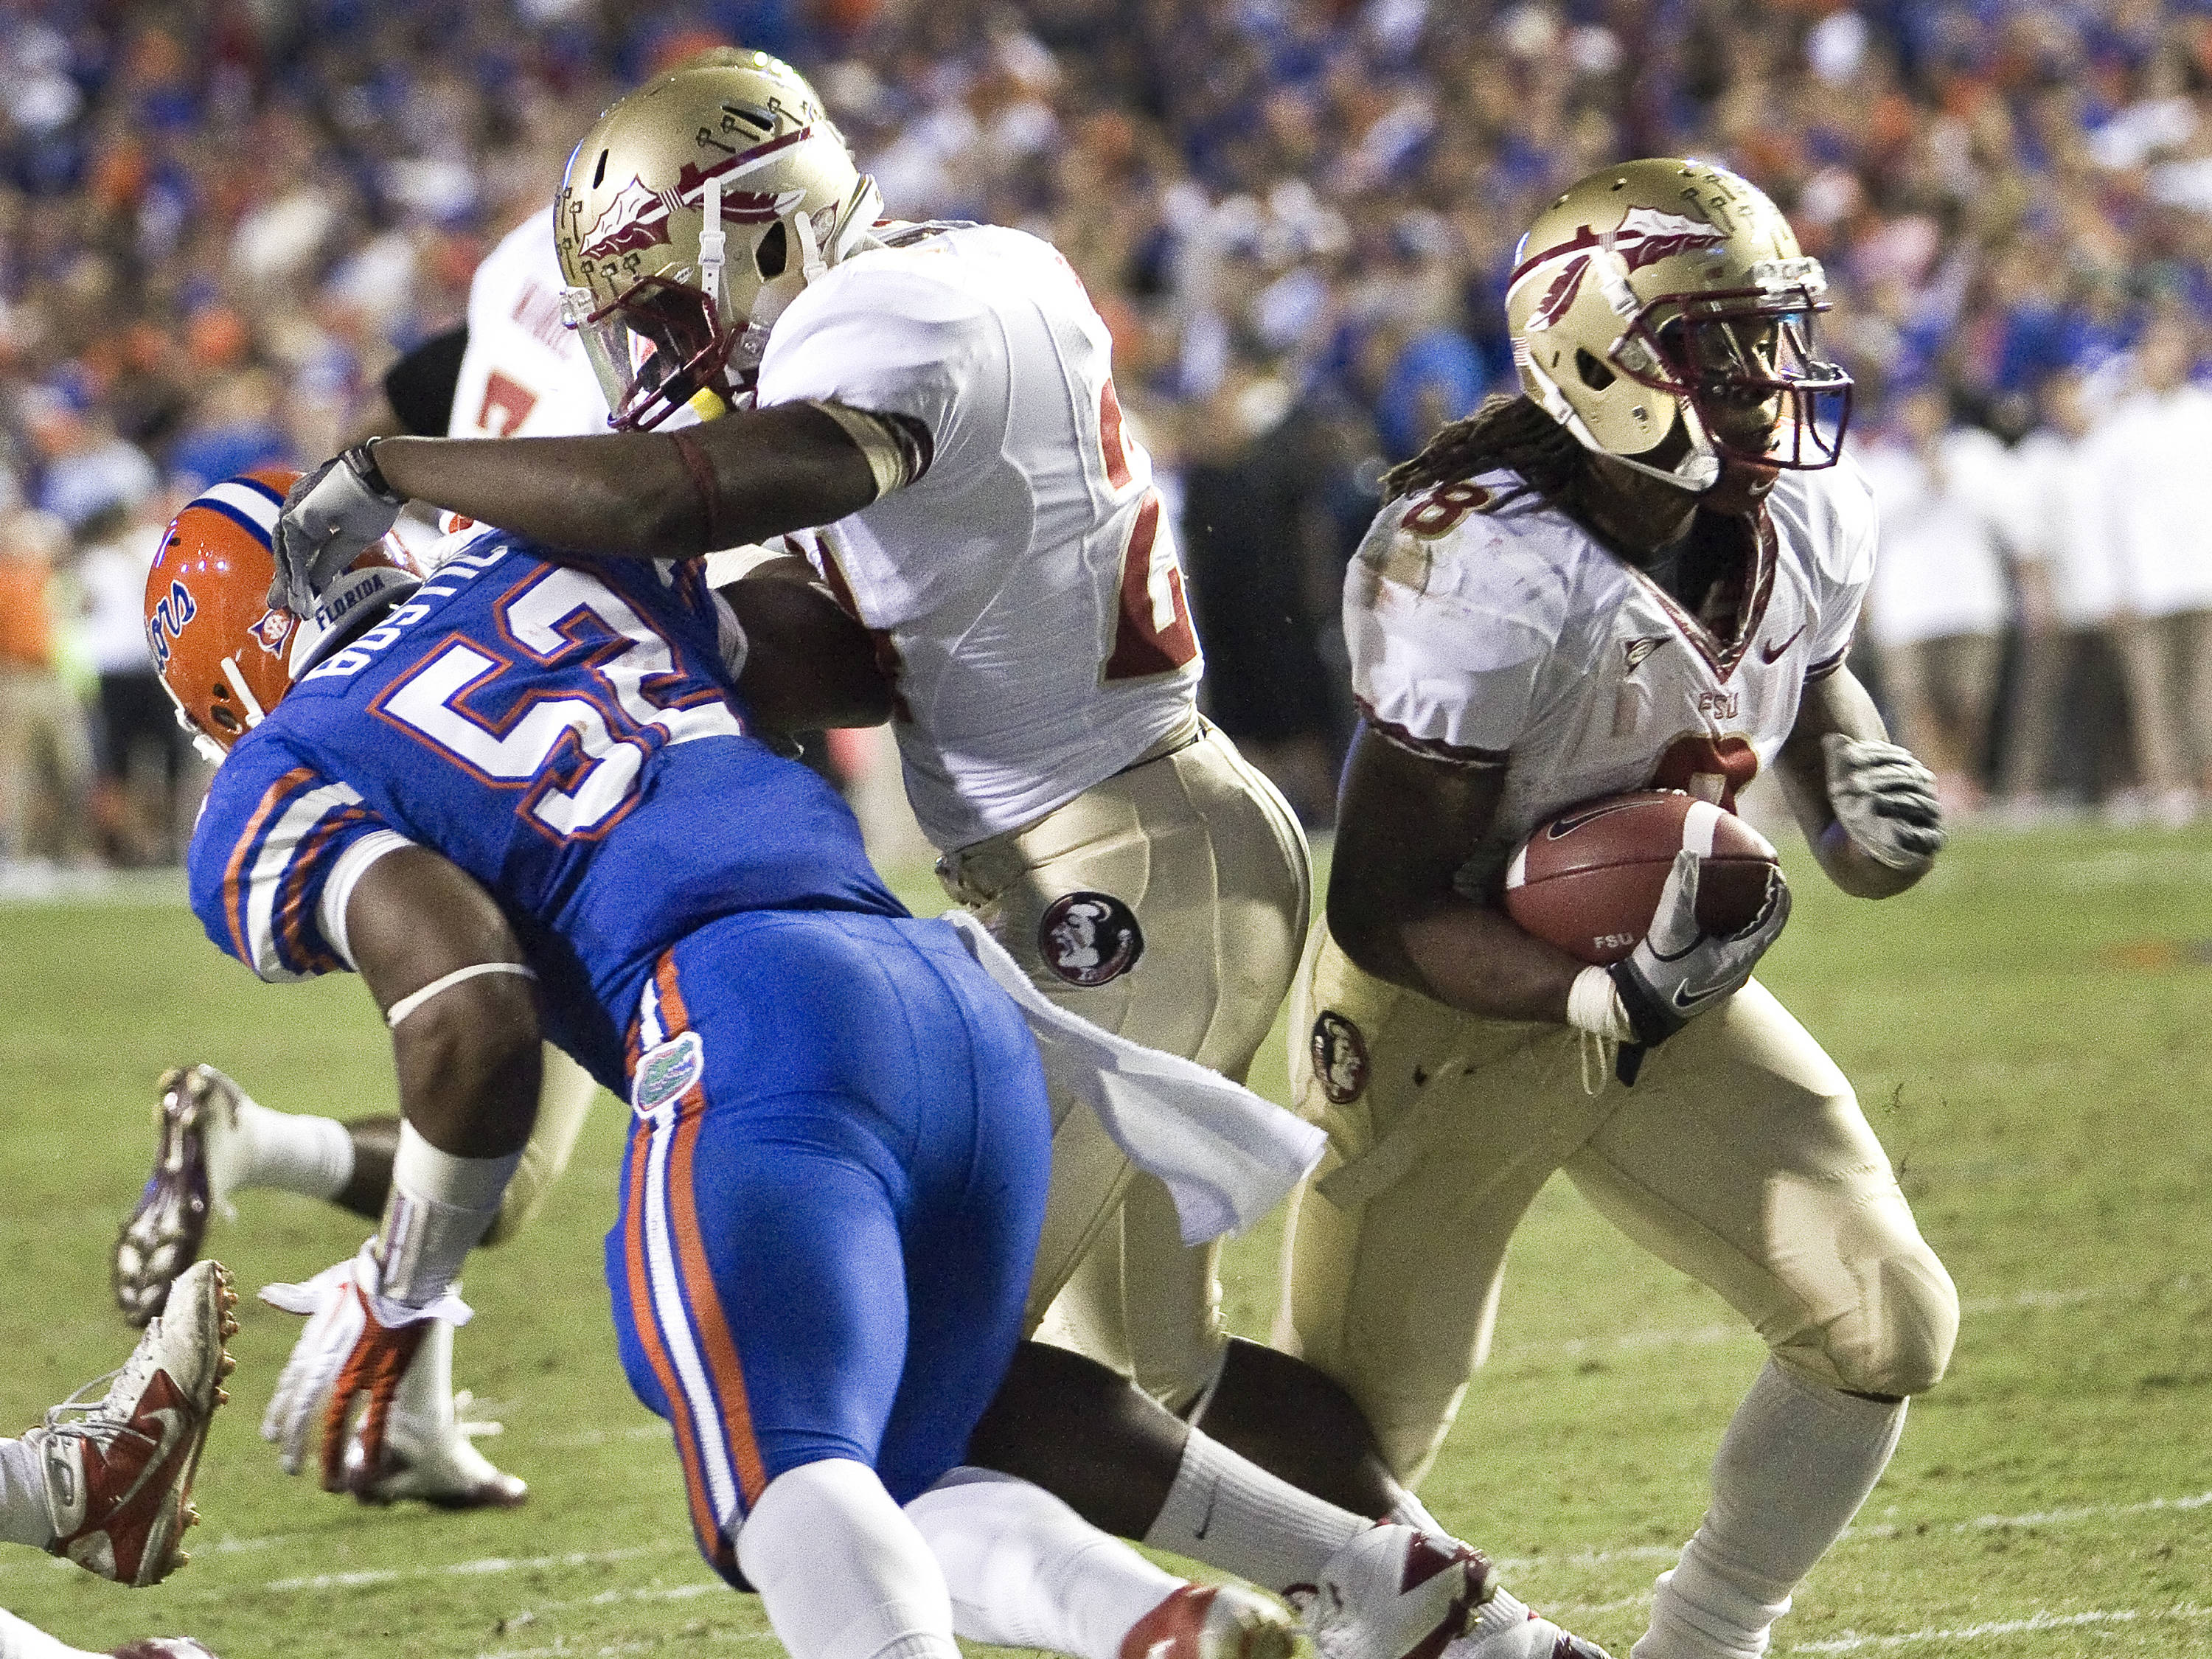 Devonta Freeman breaking into the open, FSU vs Florida, 11/26/2011